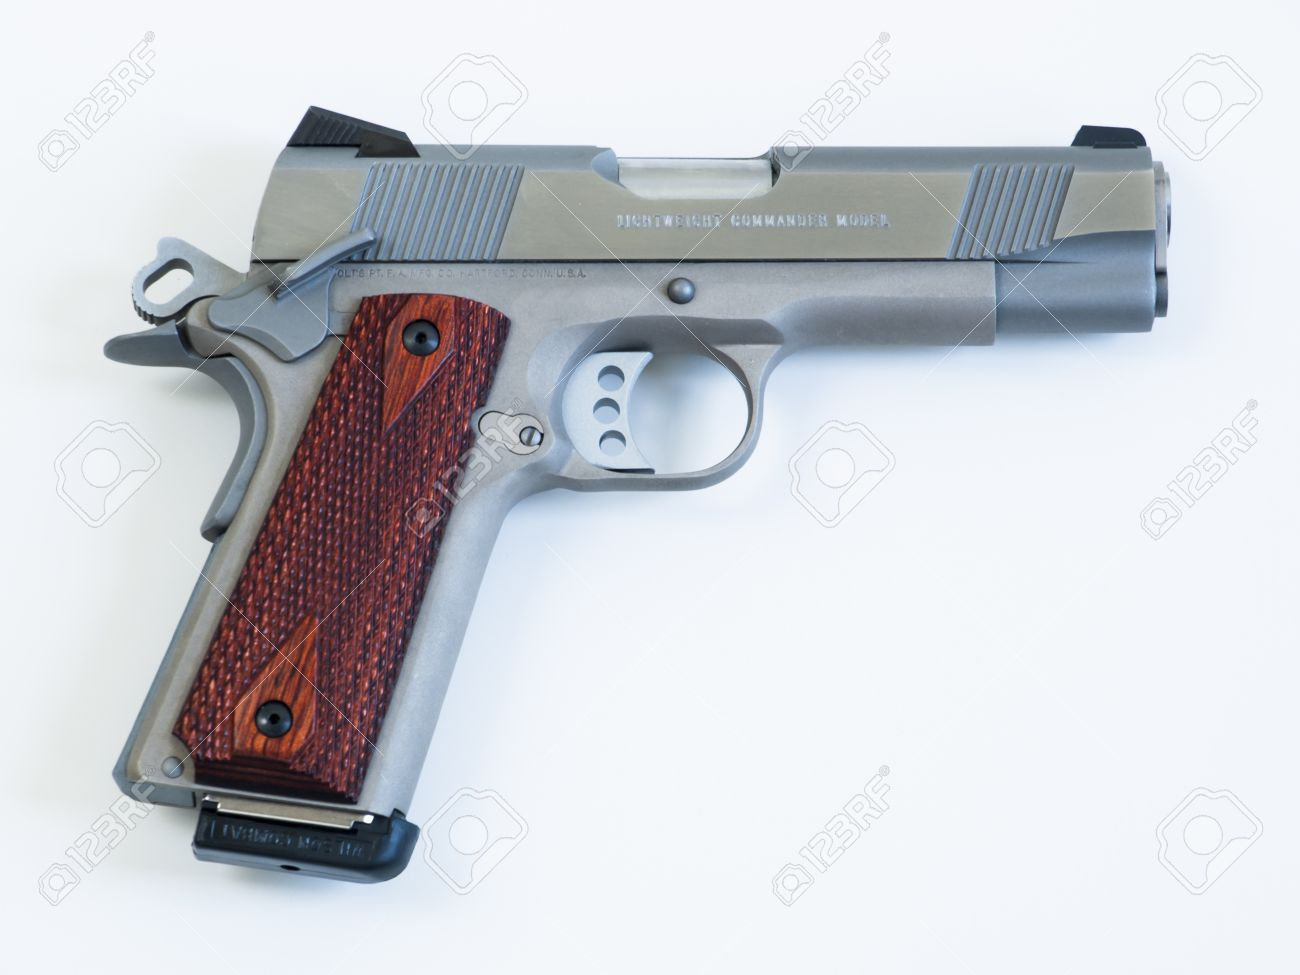 Colt 1911 Commander Is A Single-action, Semi-automatic, Magazine-fed ...